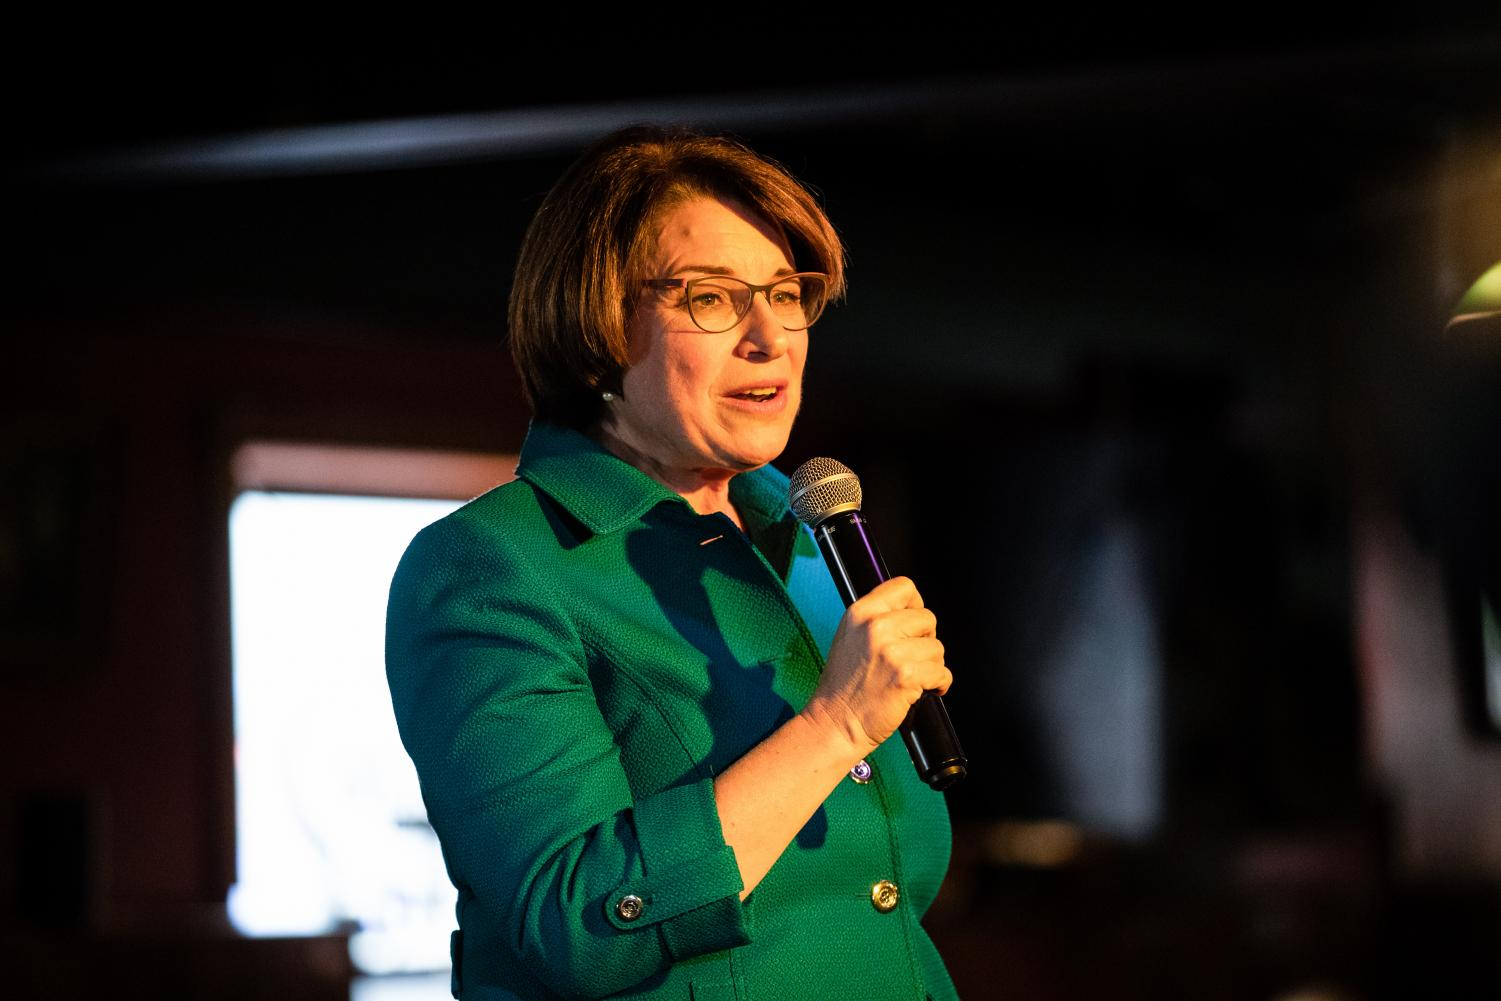 Sen. Amy Klobuchar, D-Minn., visited Iowa City Saturday, where she honed in on her mental-health and substance-abuse plans.